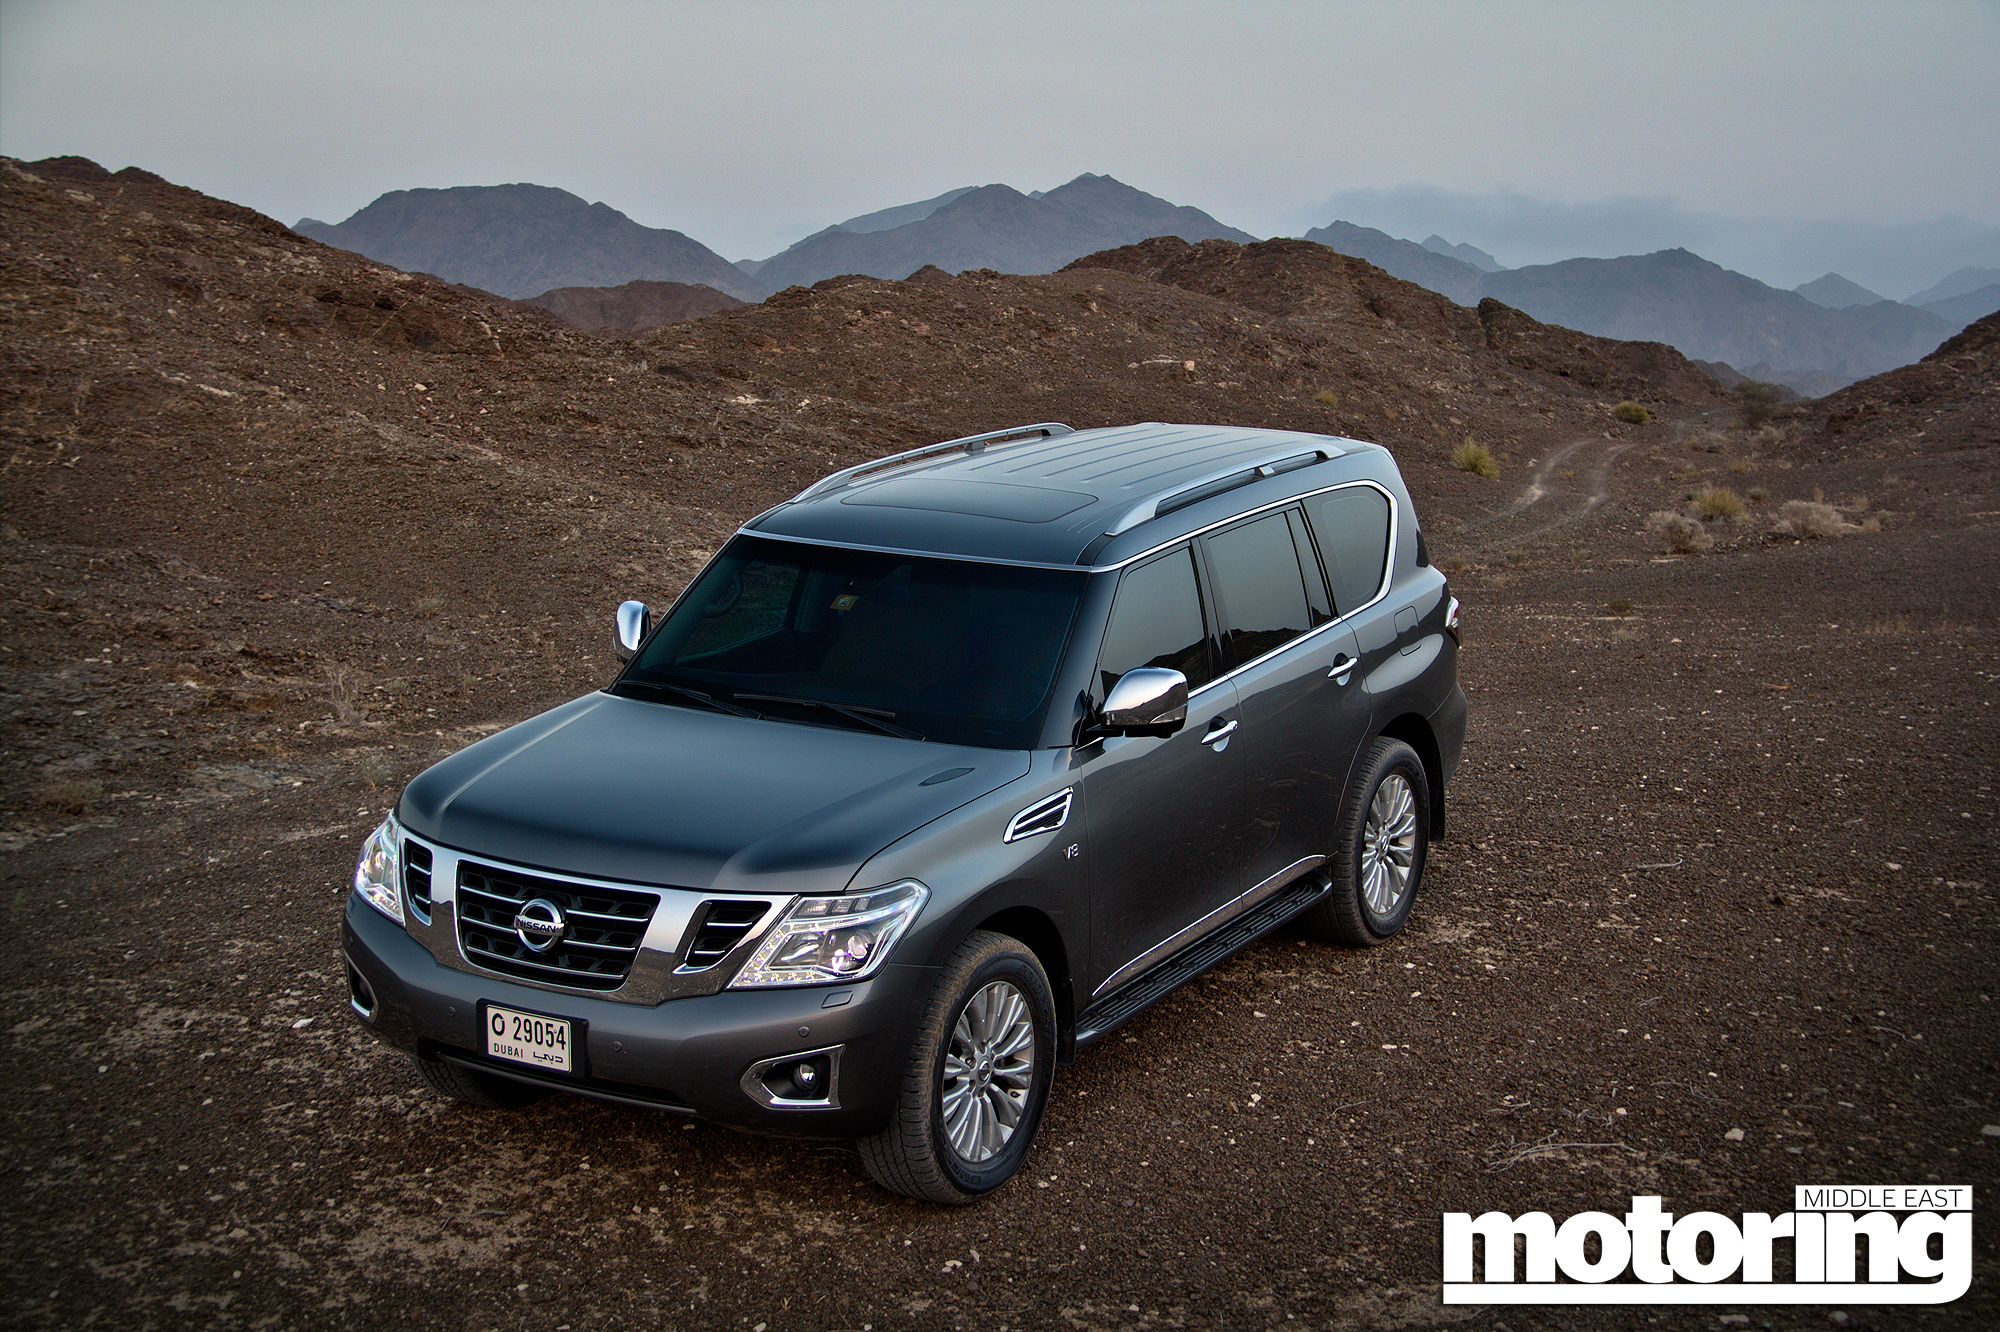 2014 Nissan Patrol Review Prices Spec Changes For 2014motoring